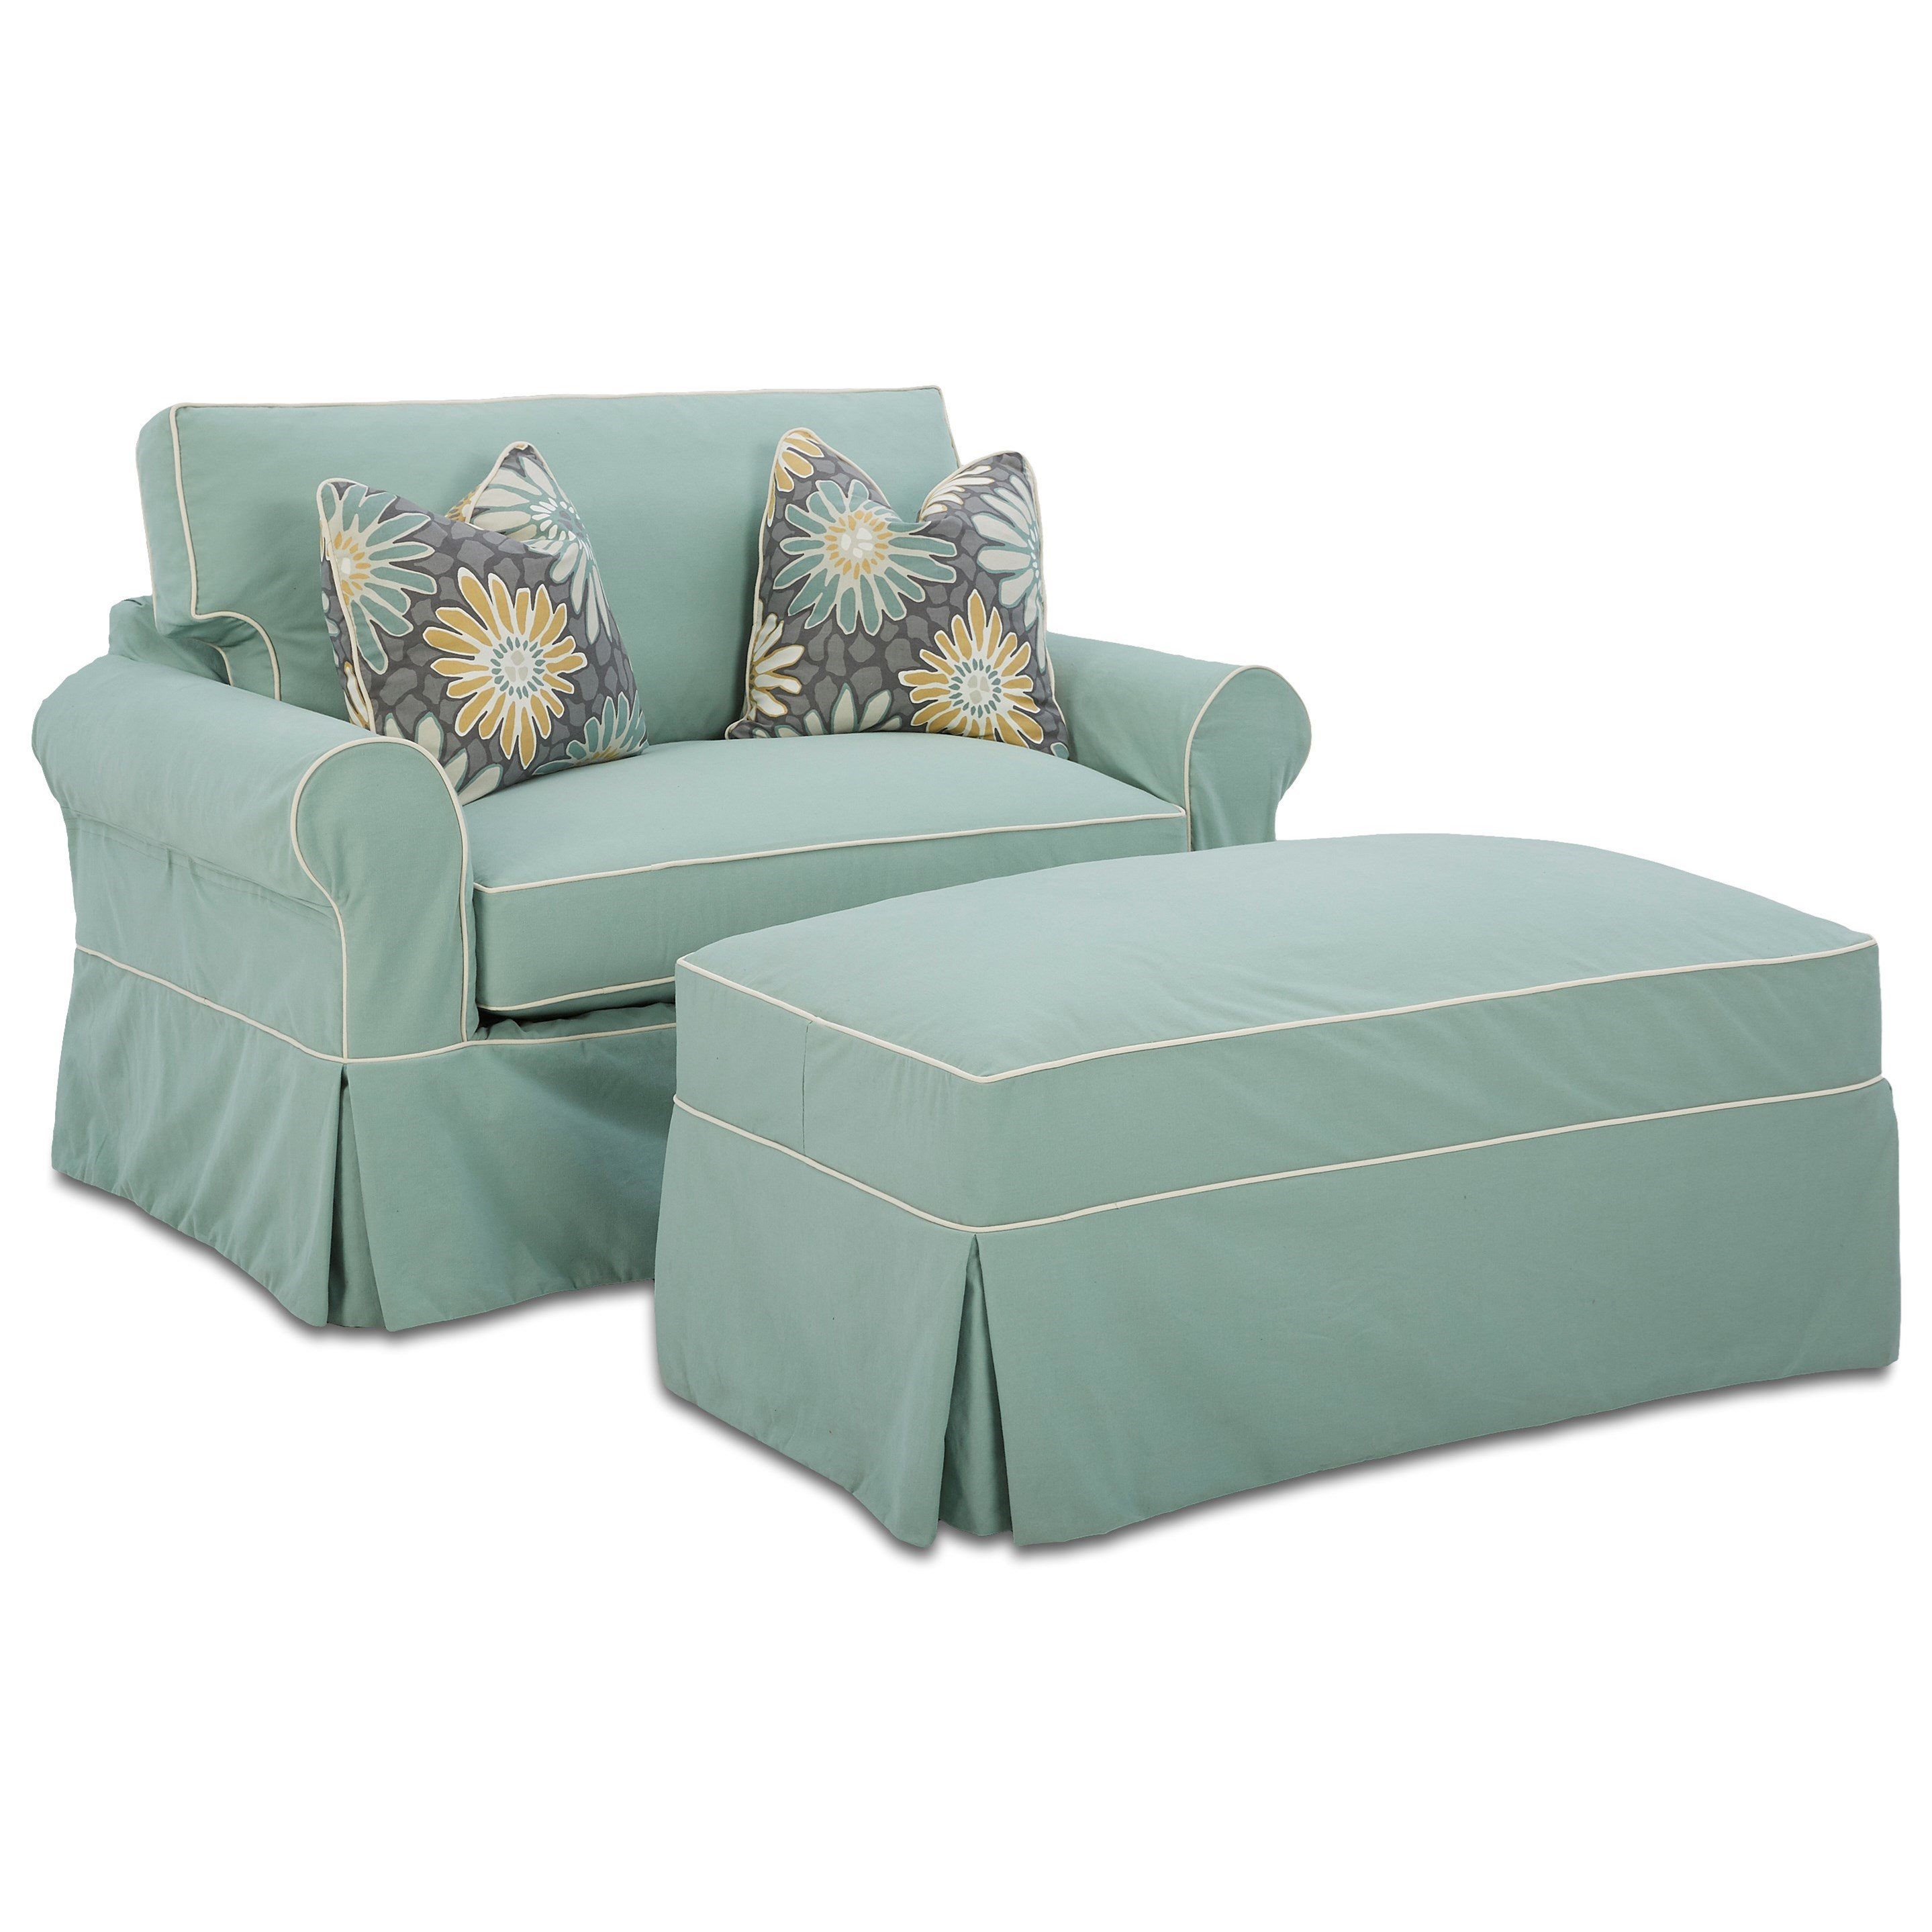 twin sleeper sofa slipcover comfy leather victoria chair with